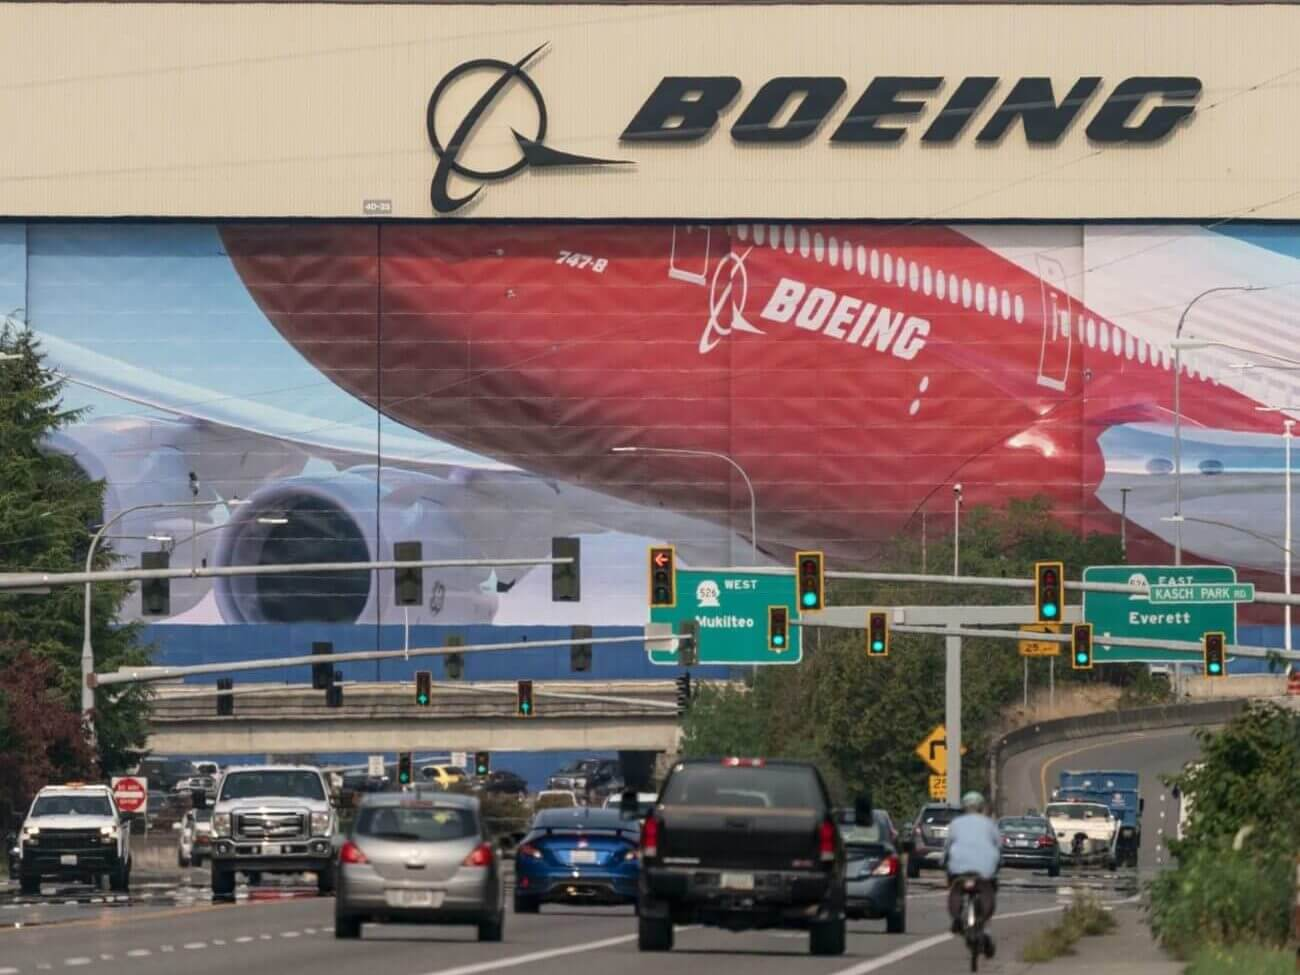 Boeing Is the Latest Company to Smash out a Adverse Industry Ambiance